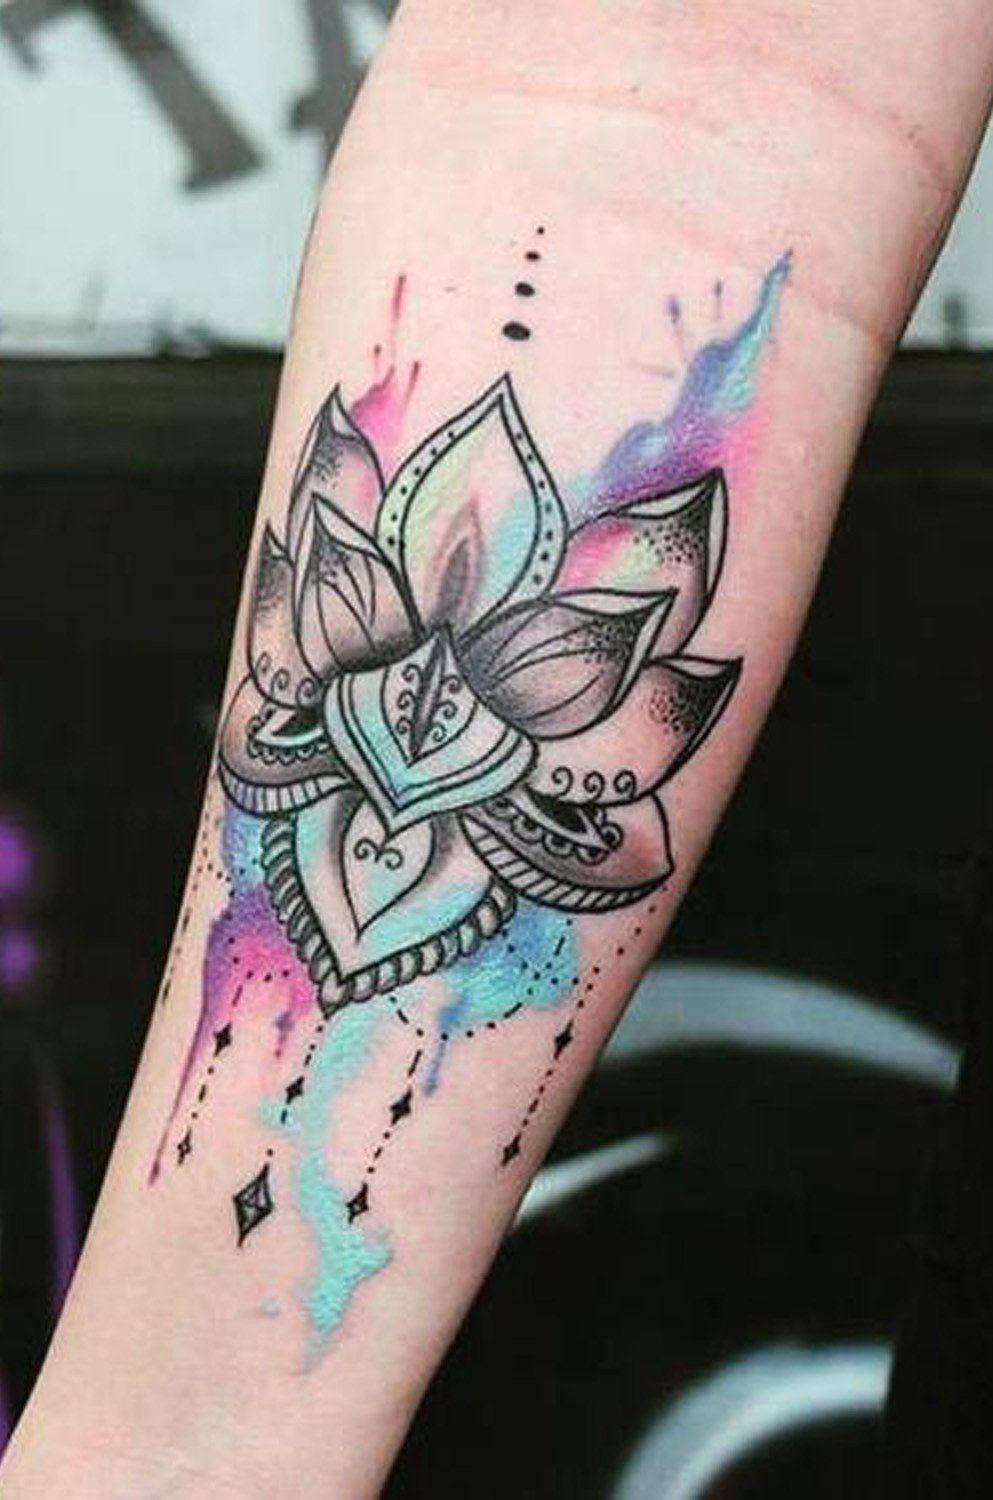 Watercolor Lotus Flower Wrist Tattoo Ideas For Women At Mybodiart Com Tattooideaswatercolor Wrist Tattoos Girls Flower Wrist Tattoos Tattoos